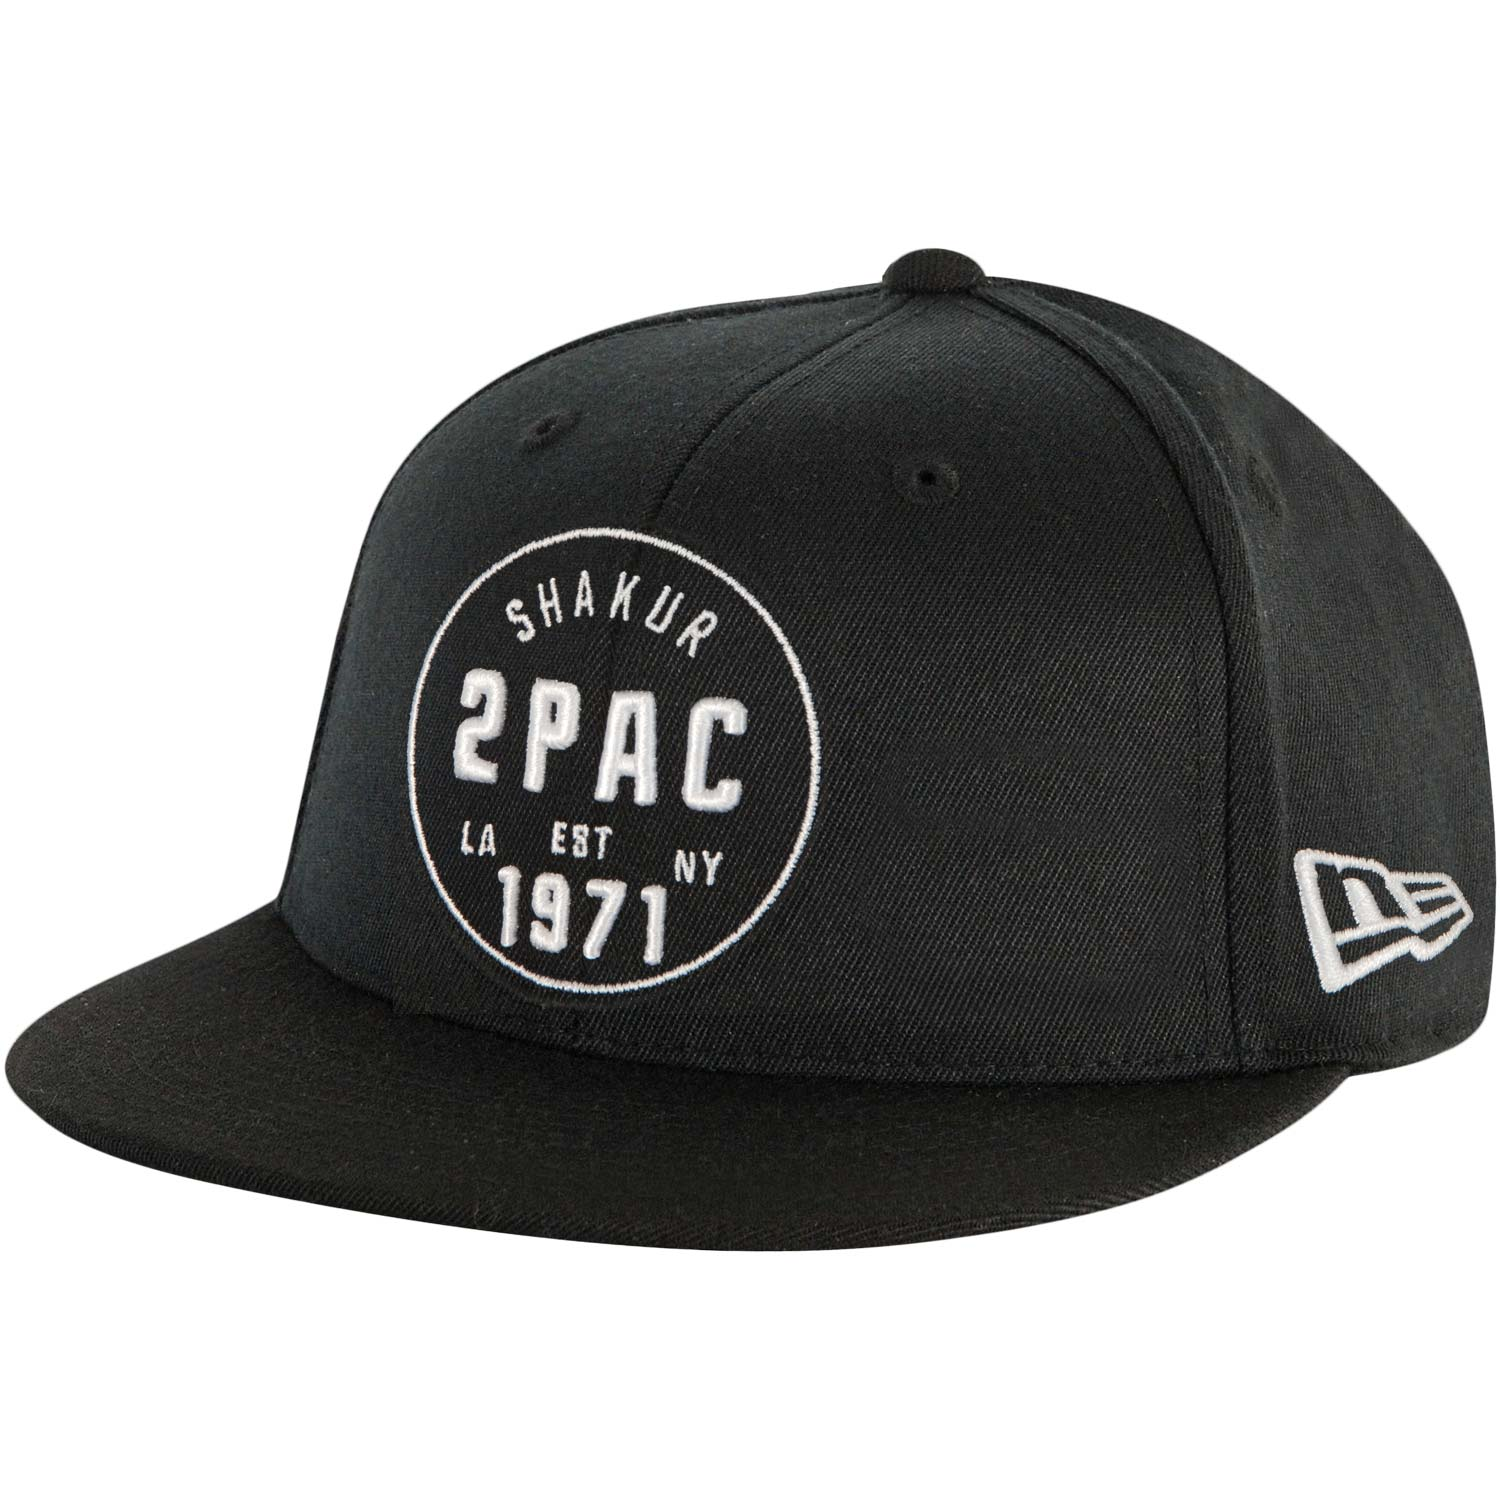 Tupac Men's Old School Snapback Baseball Cap Adjustable Black